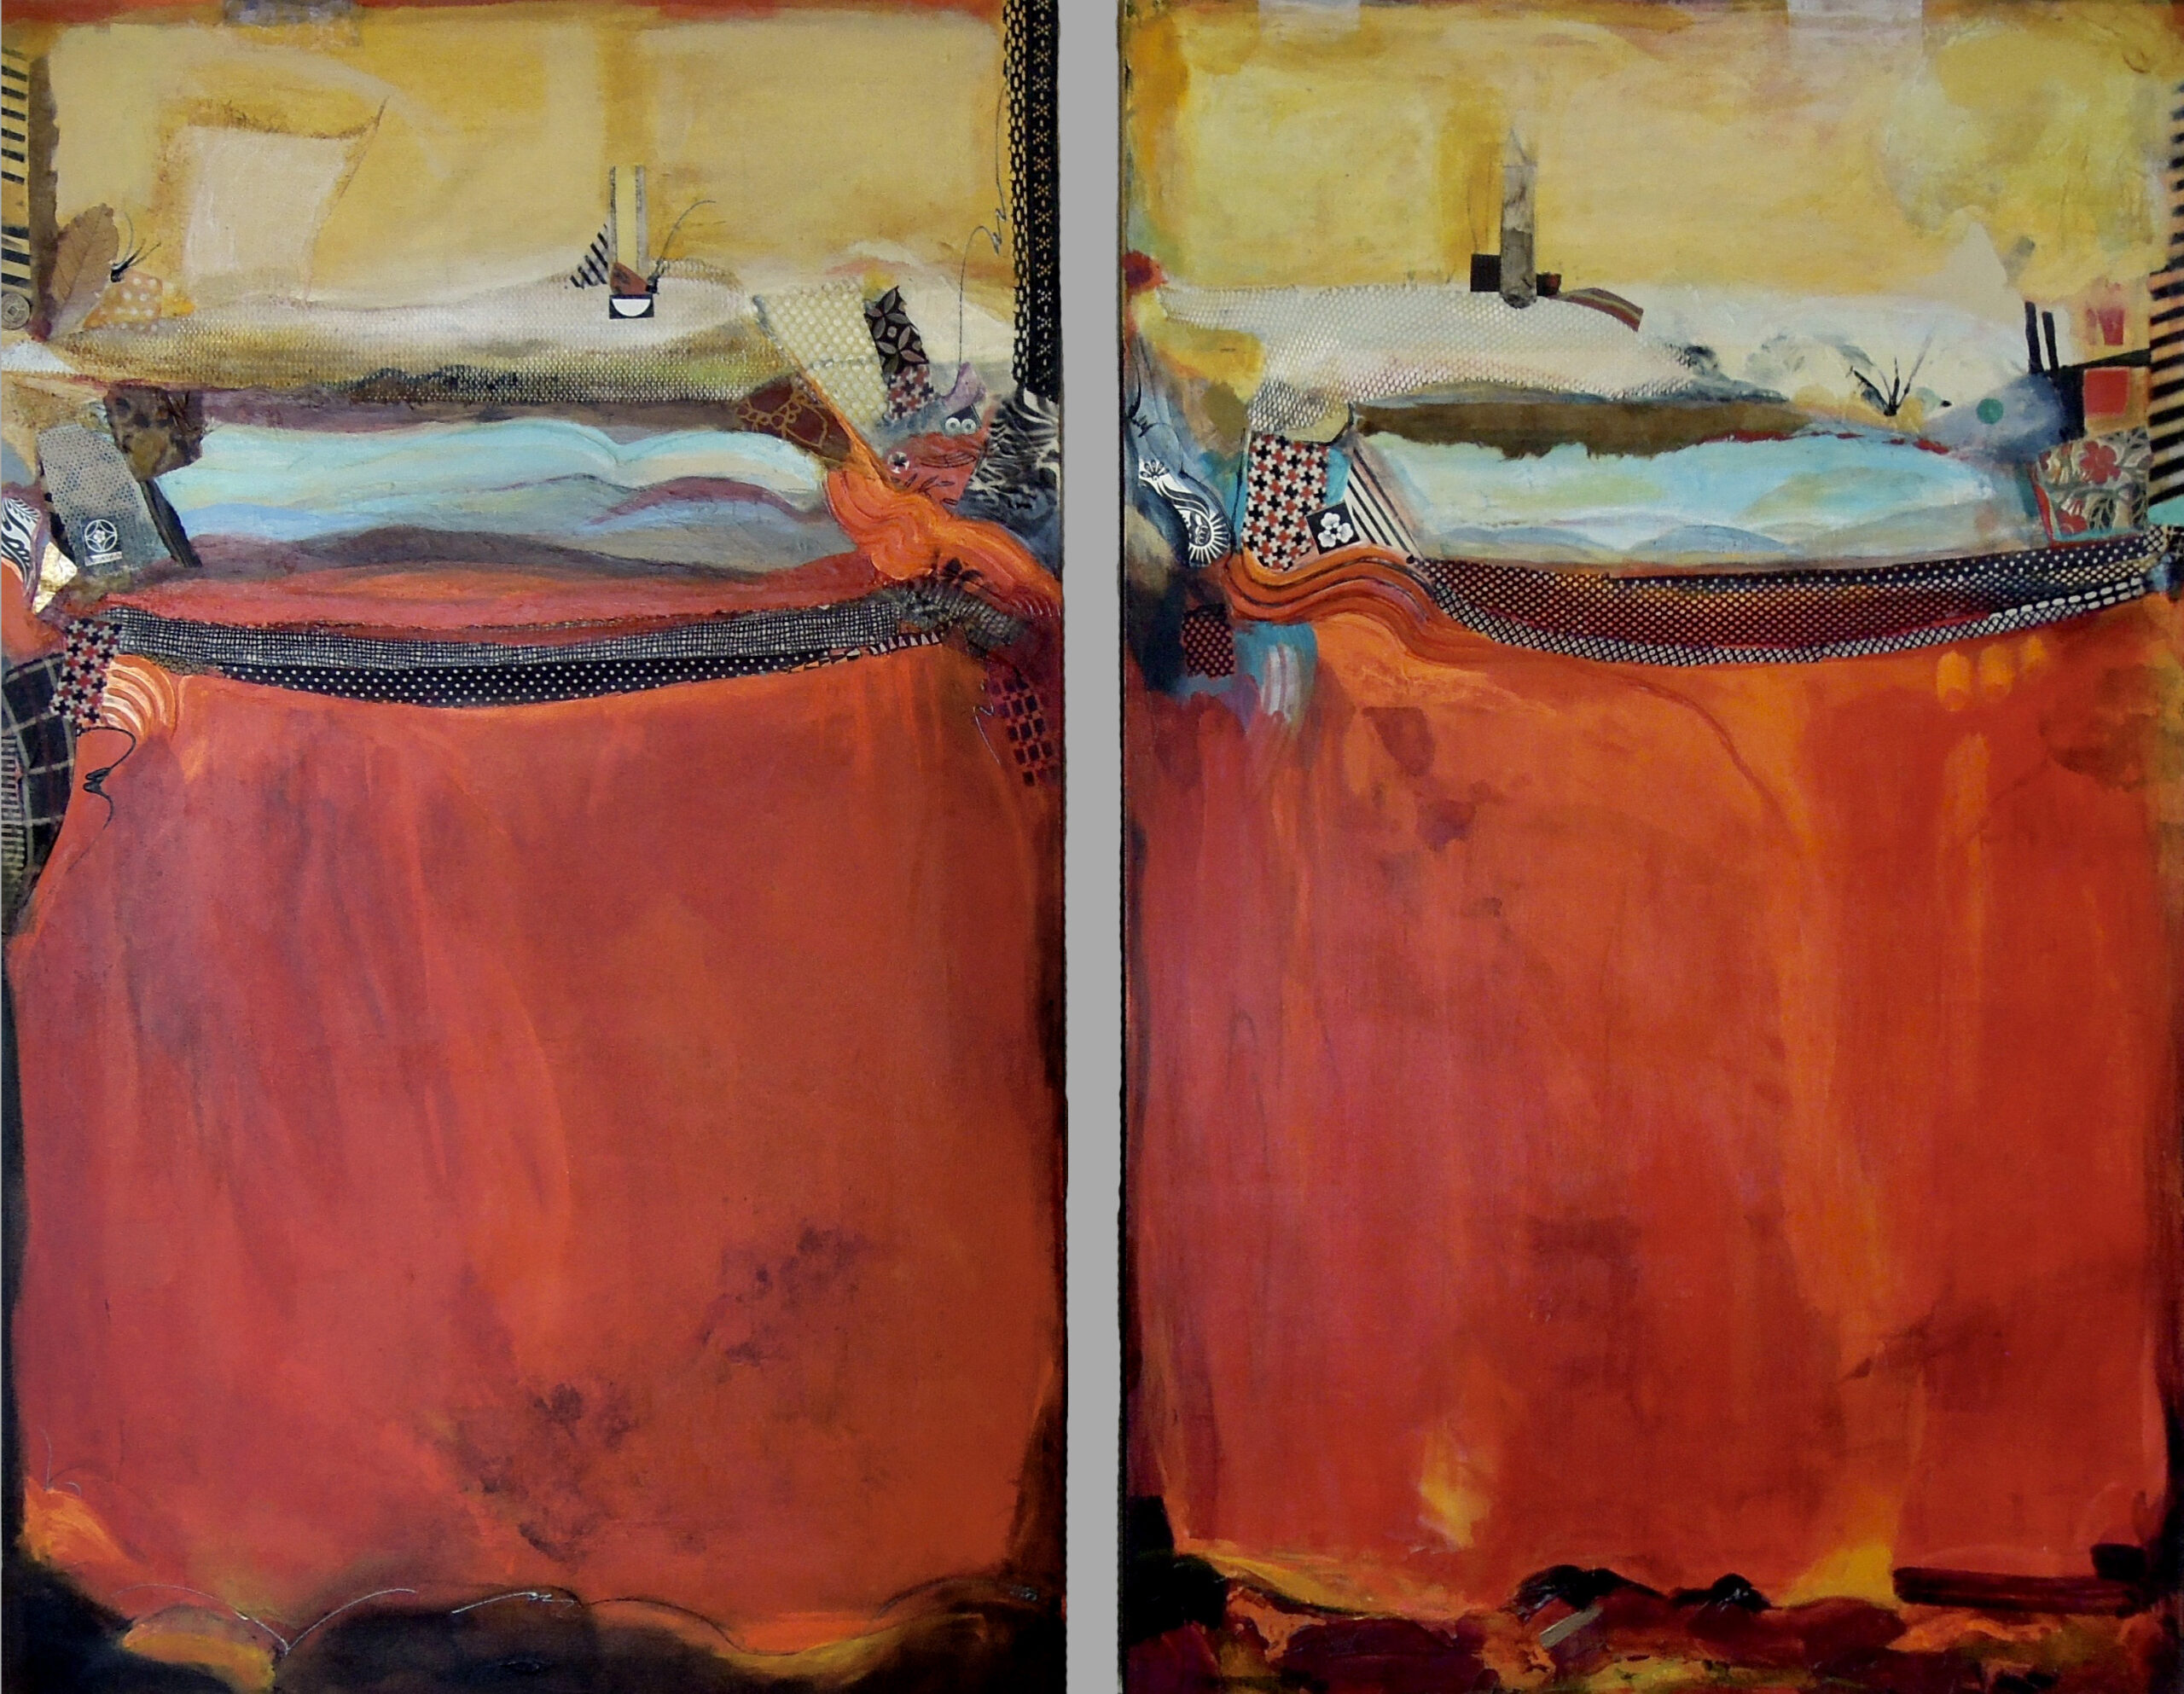 liquid acrylic painting, red abstract art, sunset painting, Michael Colpitts paintings, Large Painting Mixed Media on Canvas Wall Art Abstract Simplistic Matching Multiple Paintings